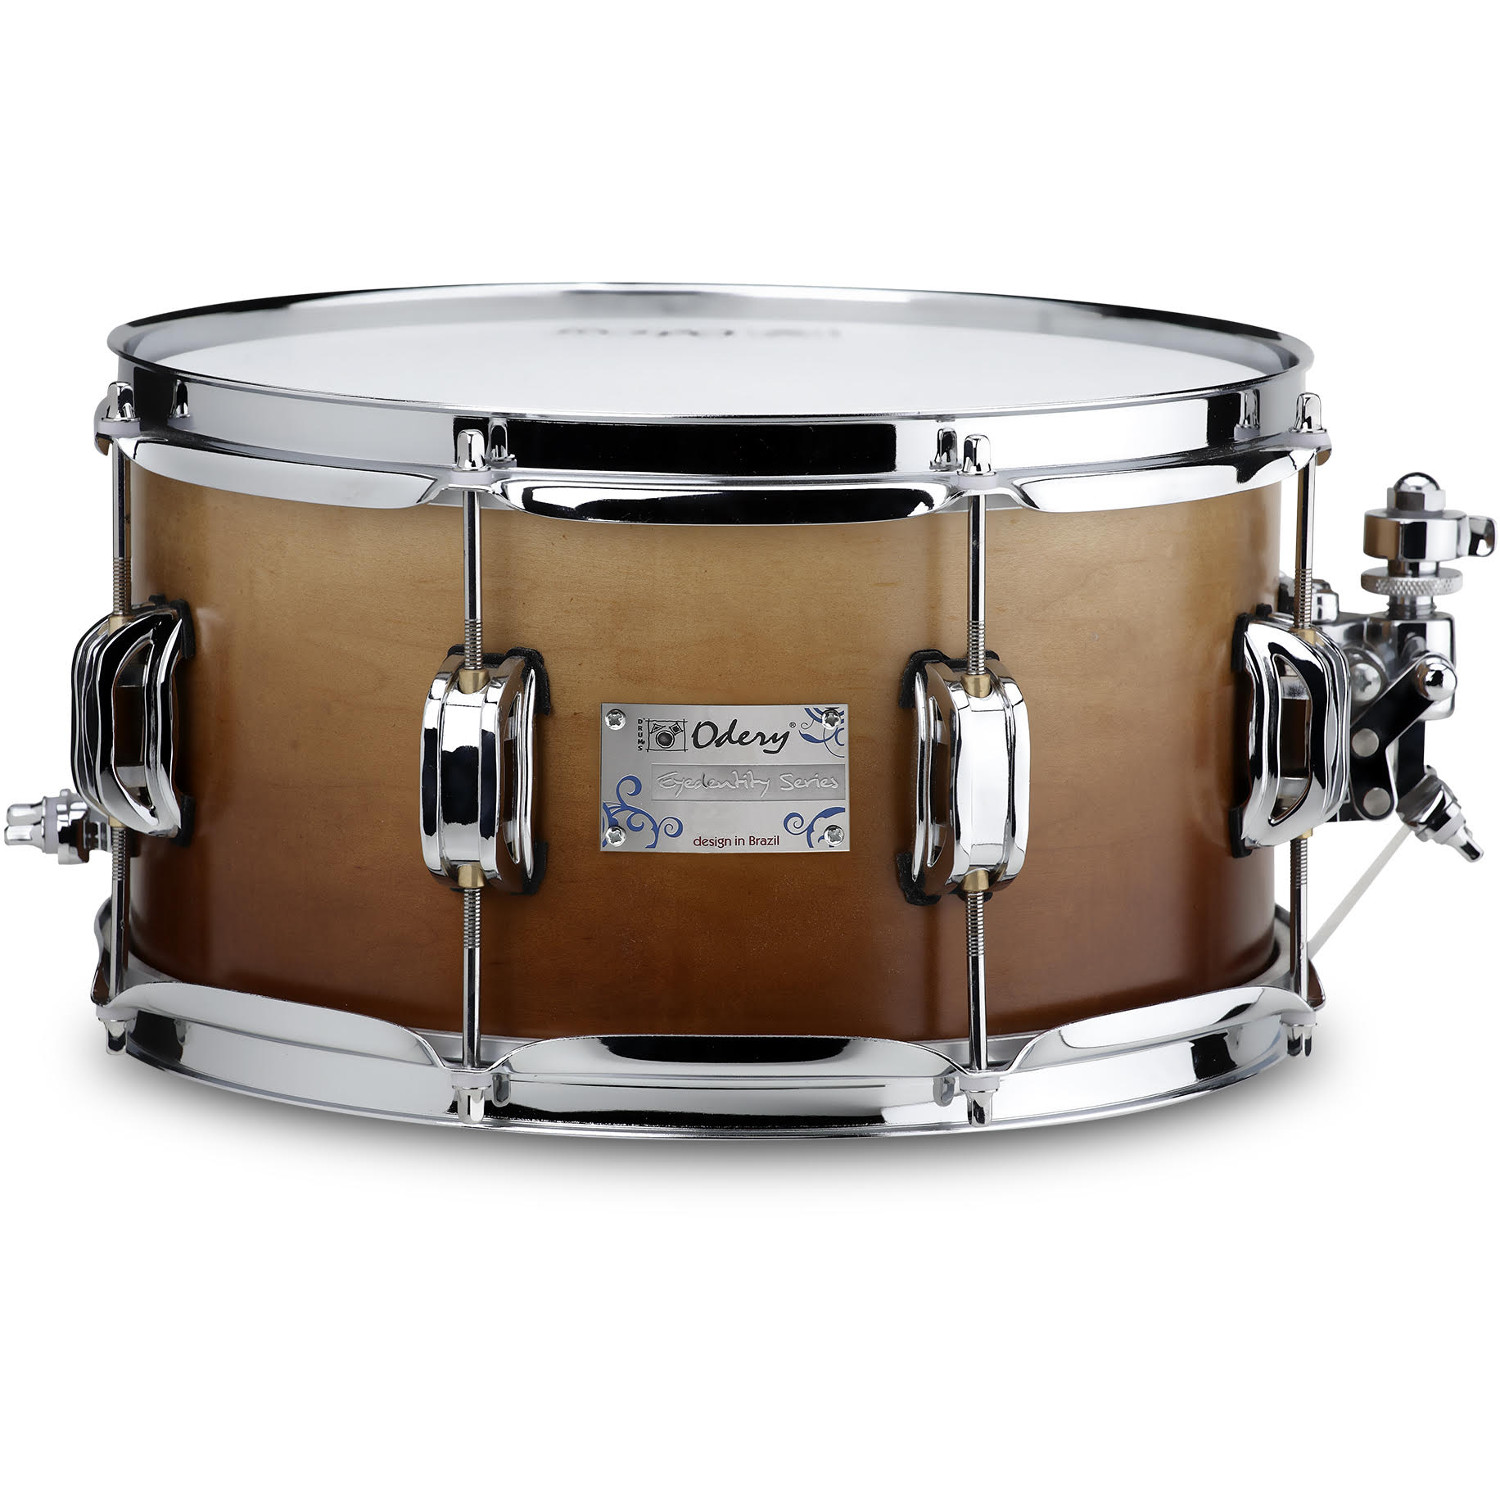 Odery Eyedentity 12 x 6.5 inch maple snare drum, Imbuia Fade